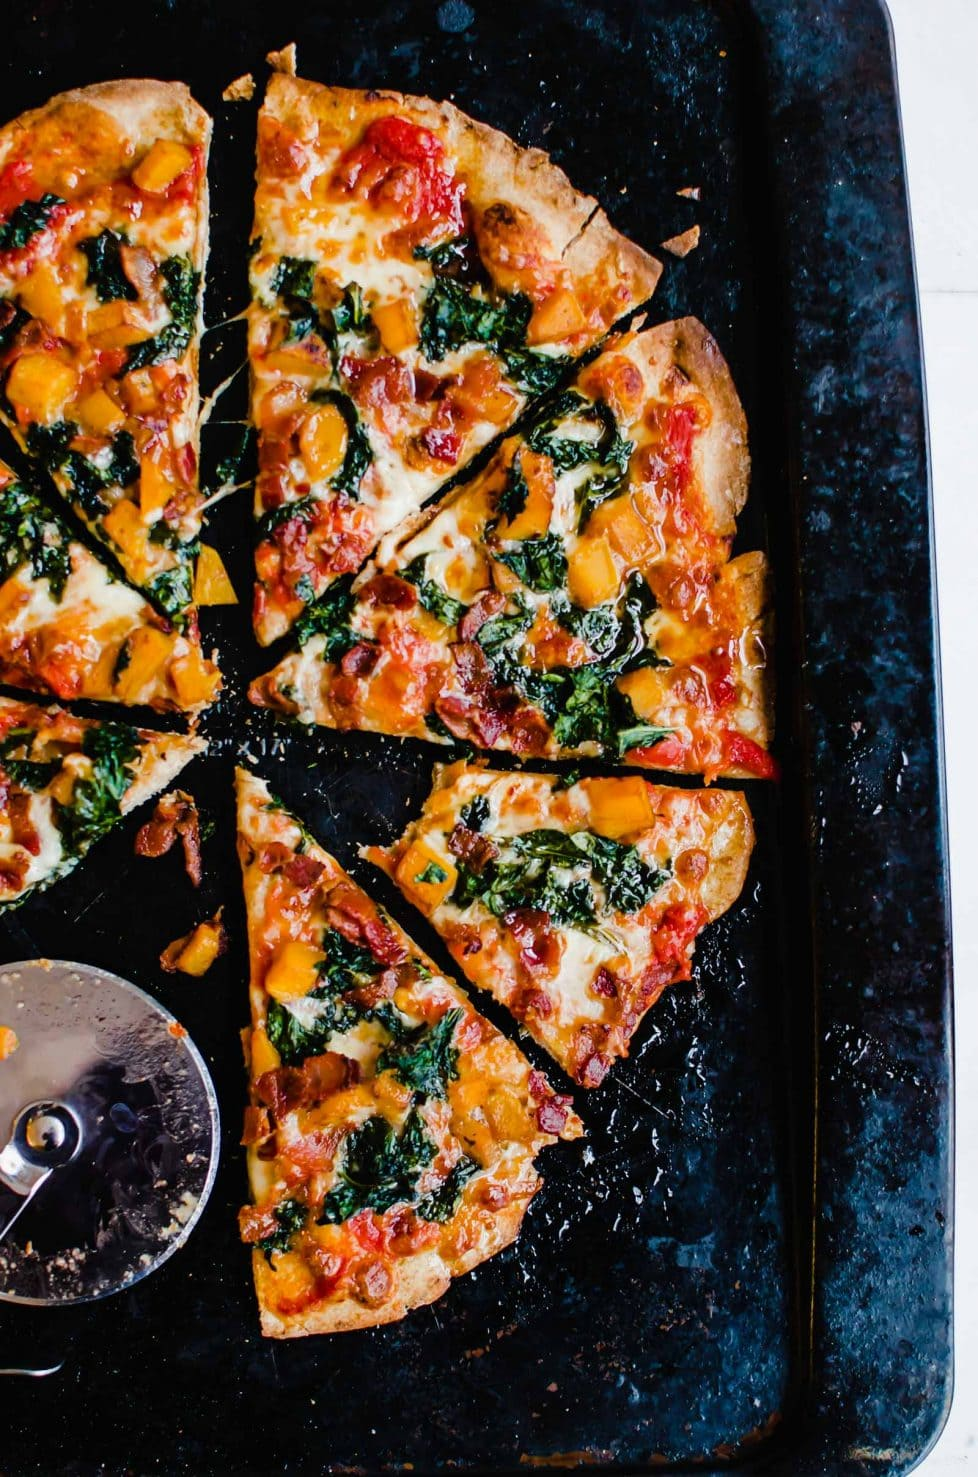 This recipe for Kale, Bacon, and Butternut Pizza with Hot Honey Drizzle is a perfect way to enjoy pizza with fresh winter produce. It's baked on a whole wheat pizza crust and topped with a sweet and spicy drizzle!